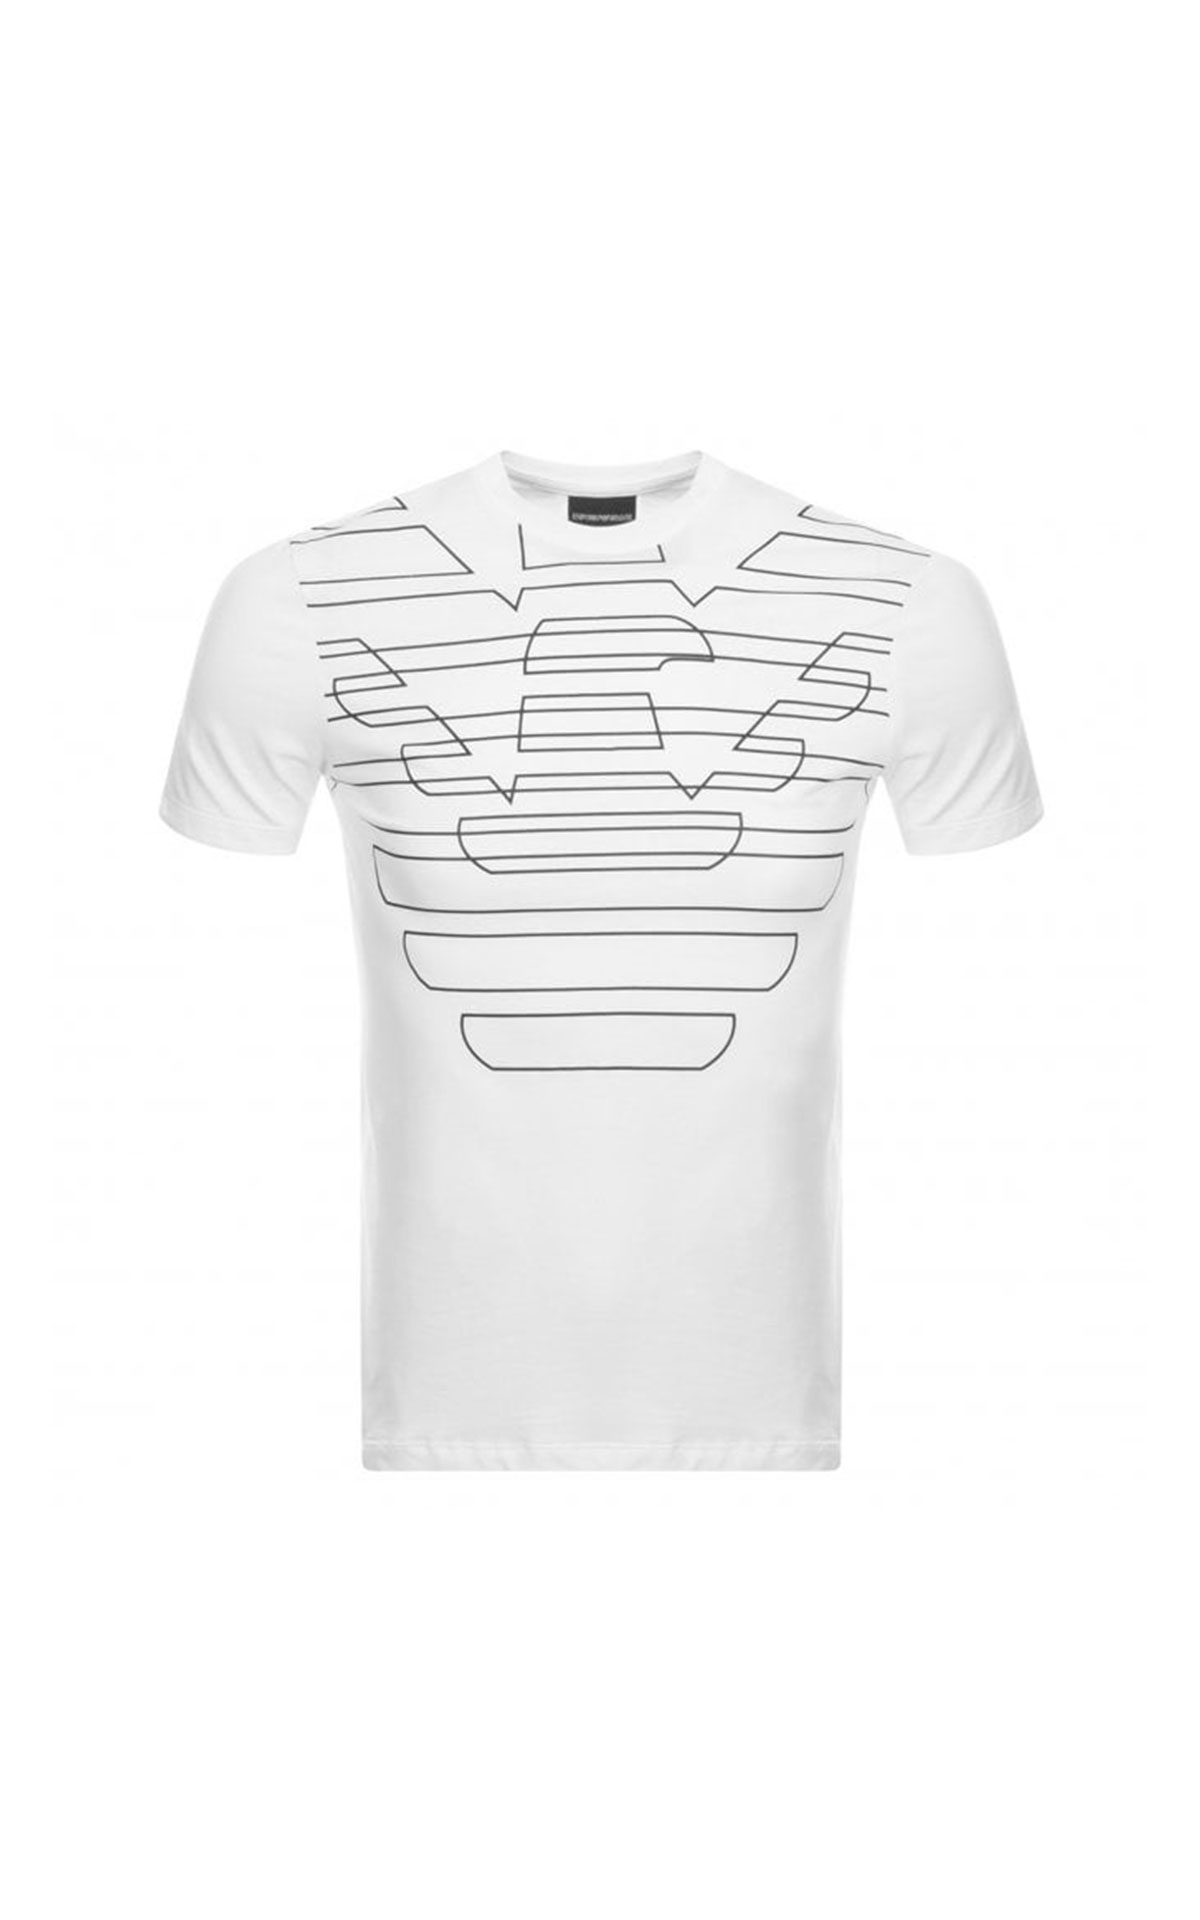 Armani Mens t-shirt from Bicester Village